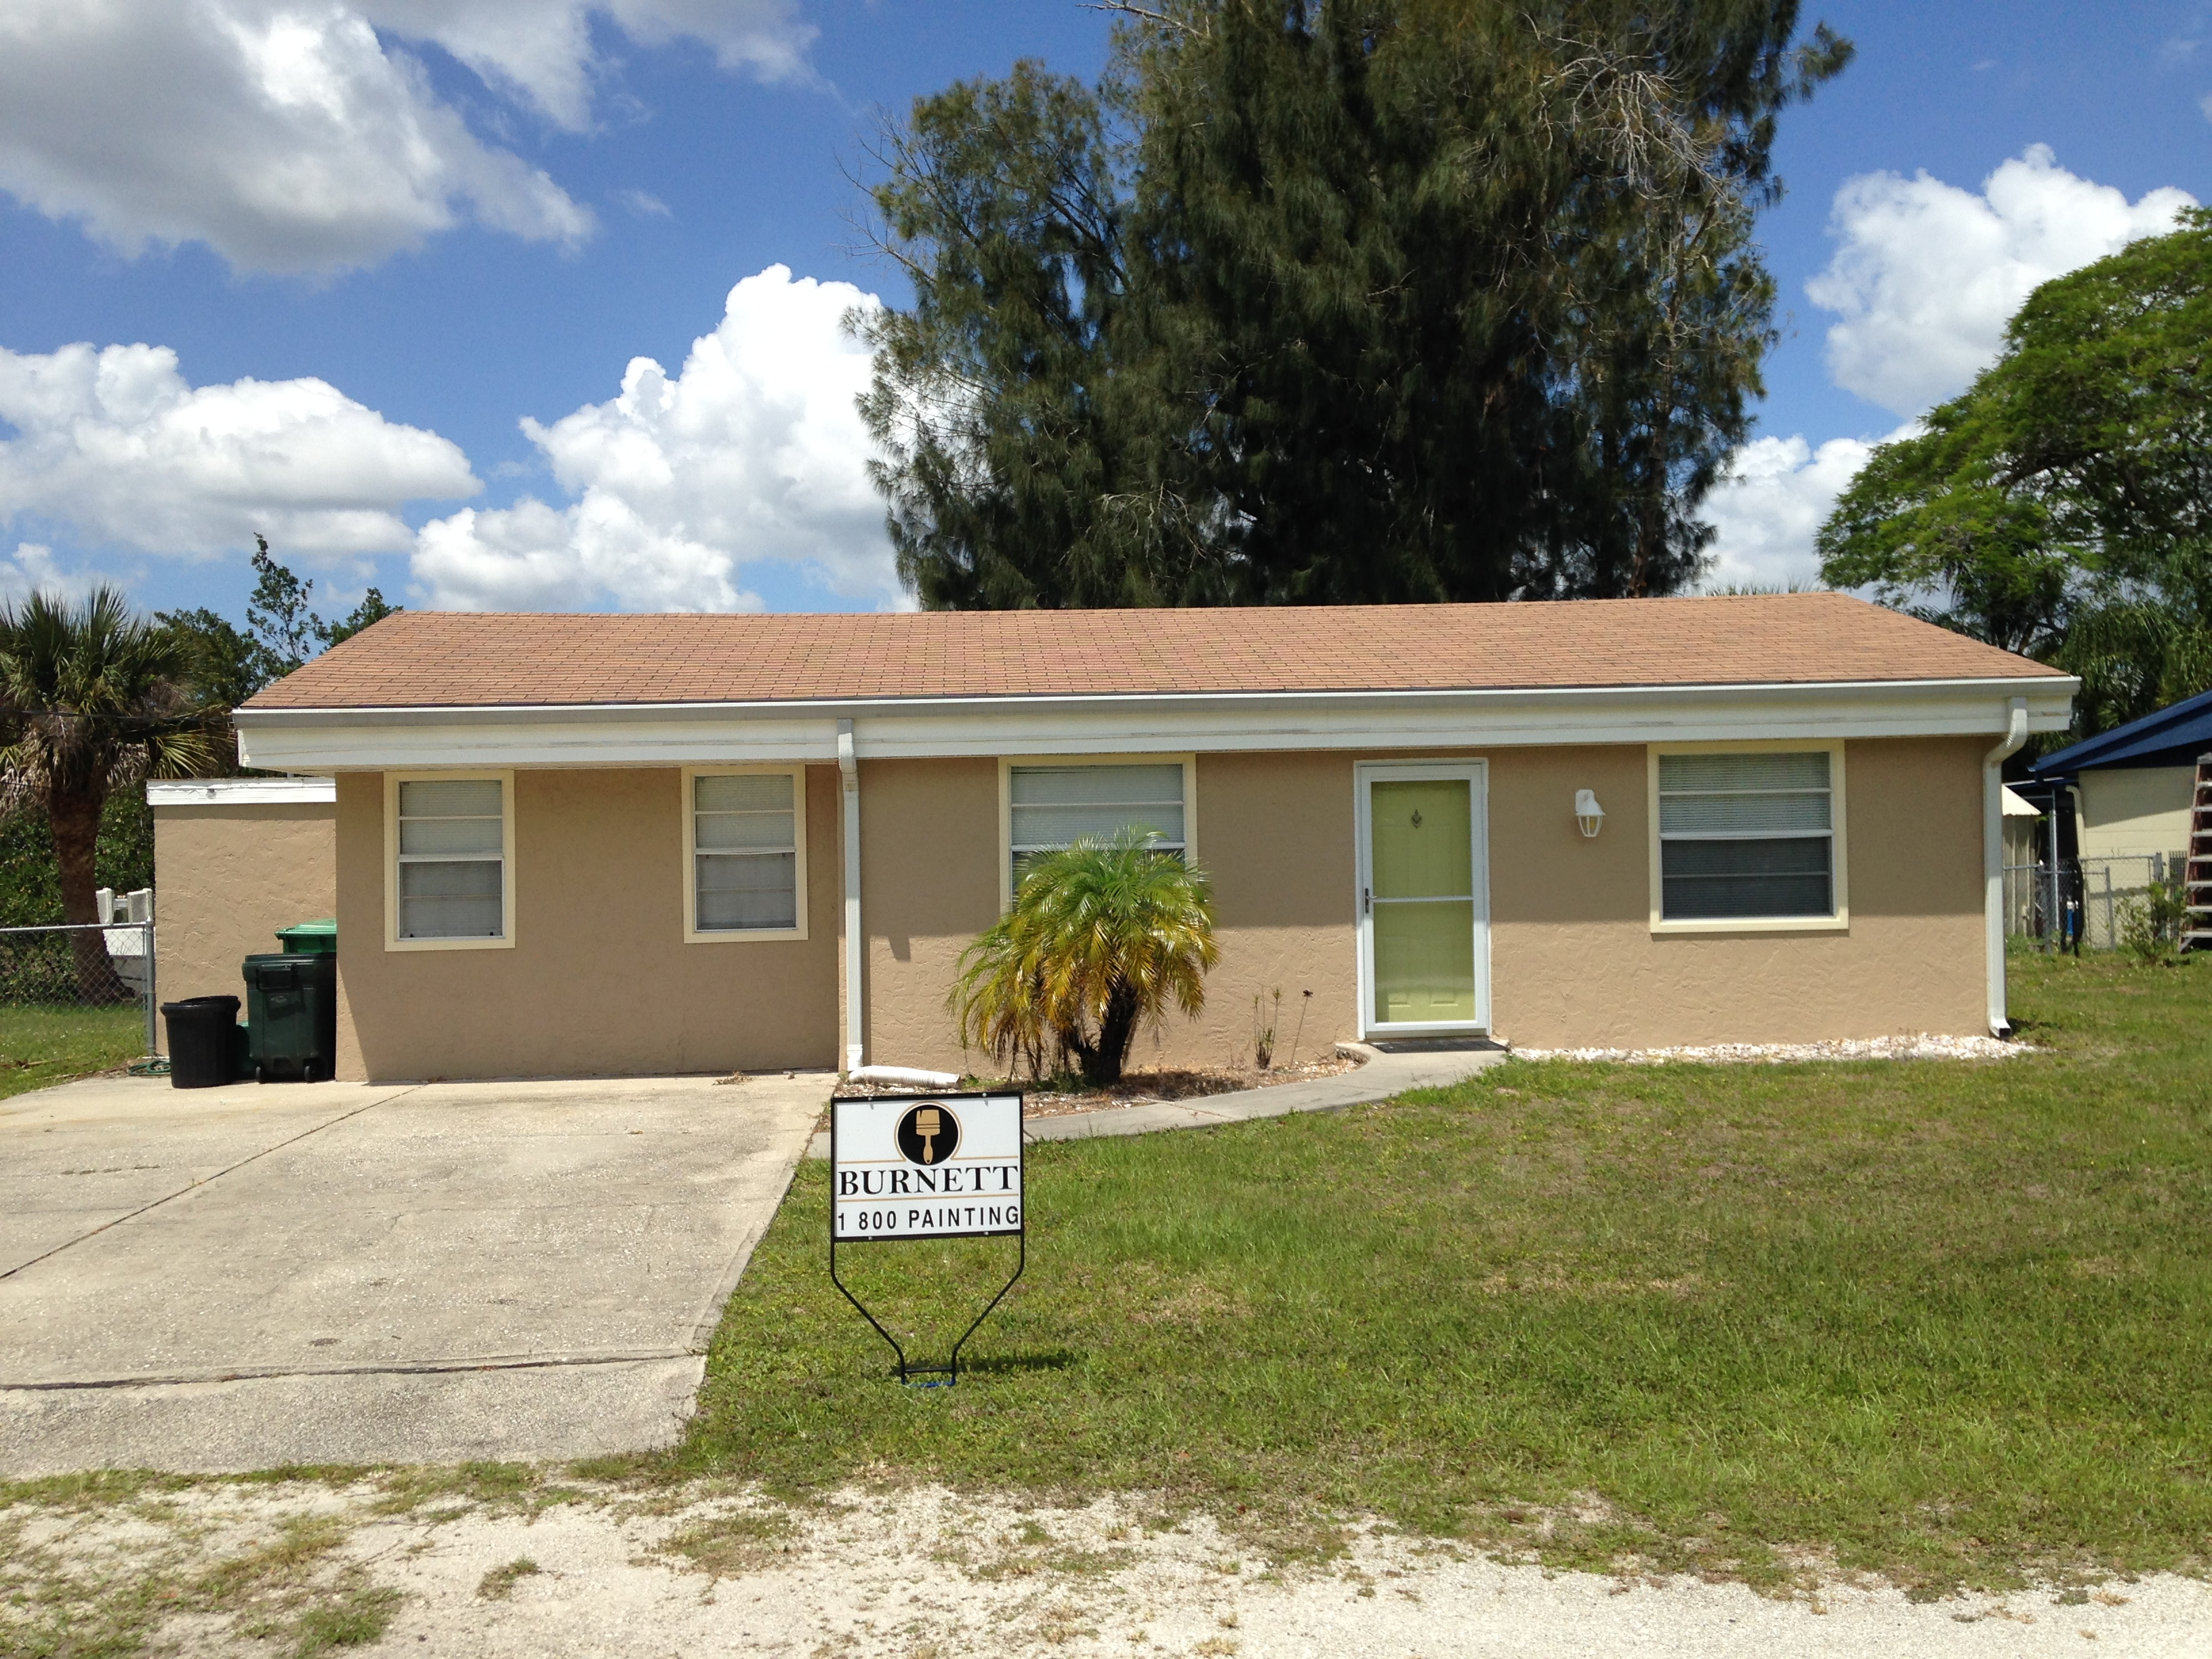 How Much Does Paint Cost >> Exterior Painting Cost Burnett Painting Venice Fl